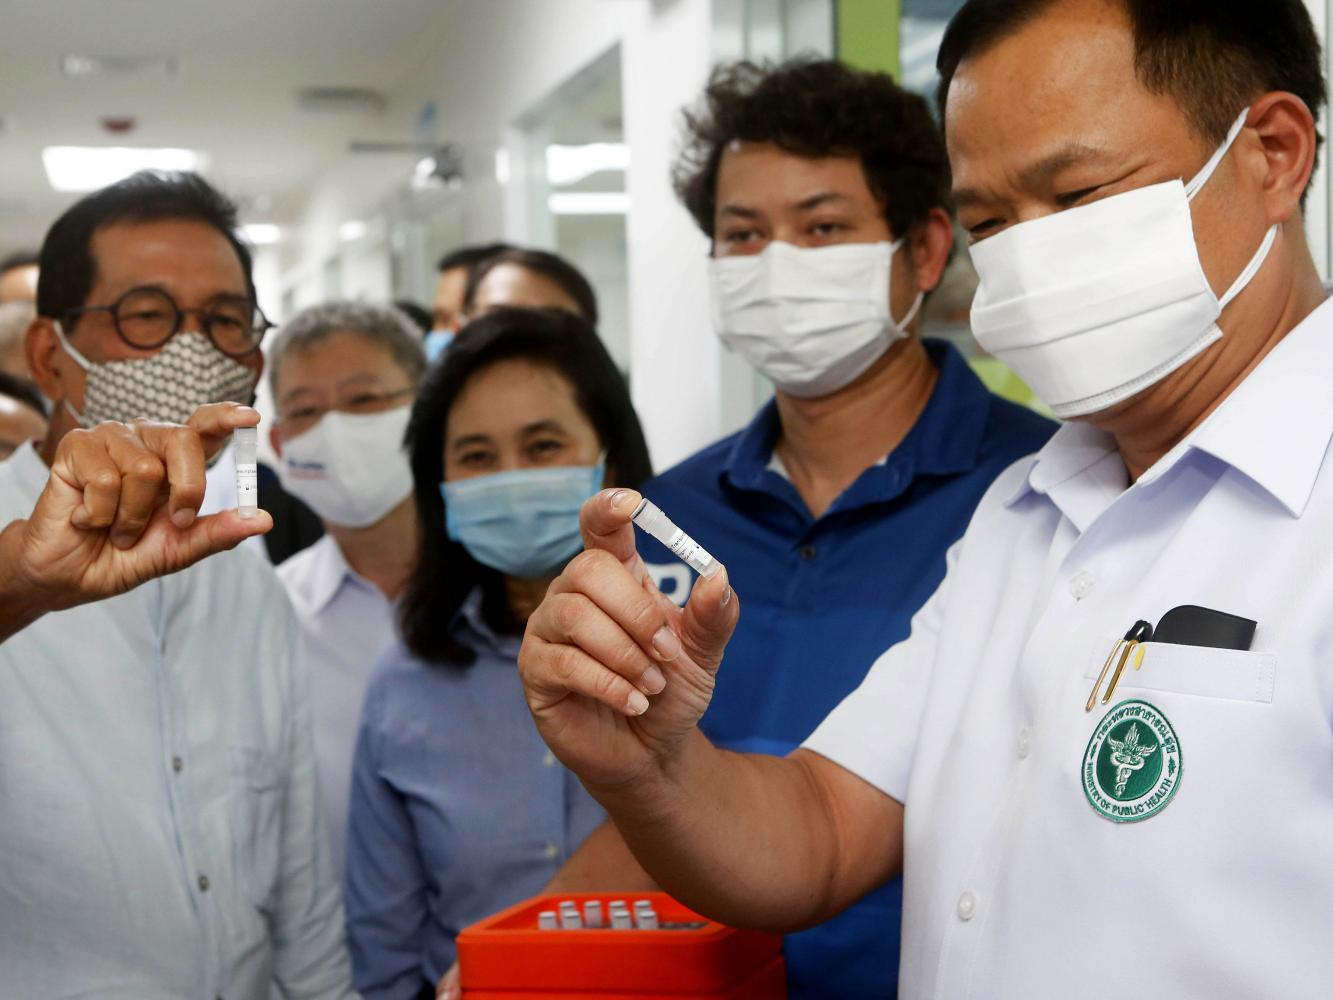 Public Health Minister Anutin Charnvirakul, right, looks at solution samples on June 1 at the Siam Bioscience Group, which produces Covid-19 test kits. Pattarapong Chatpattarasill